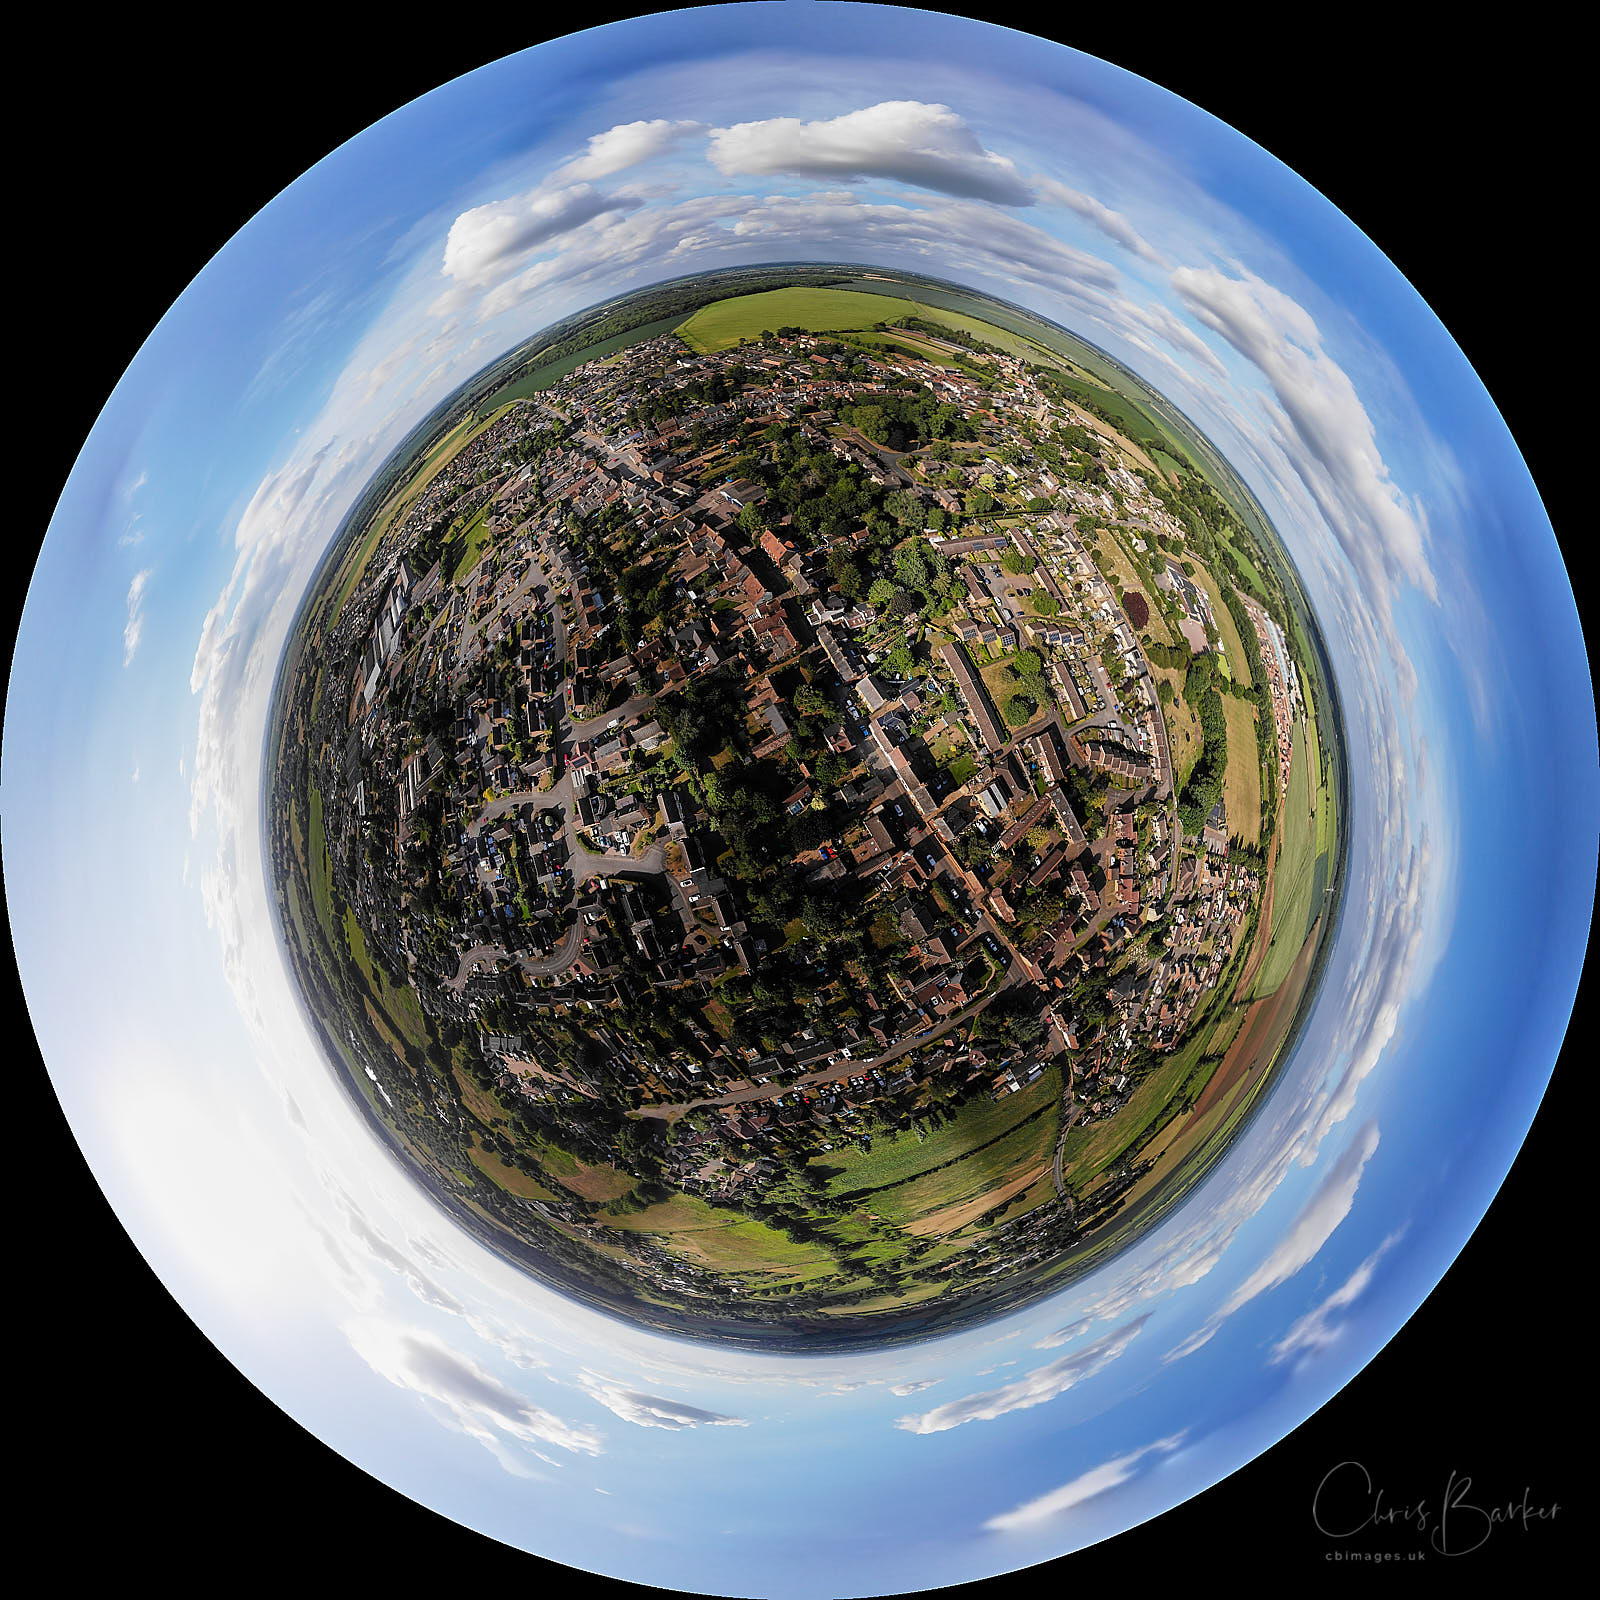 A view of our village made circular